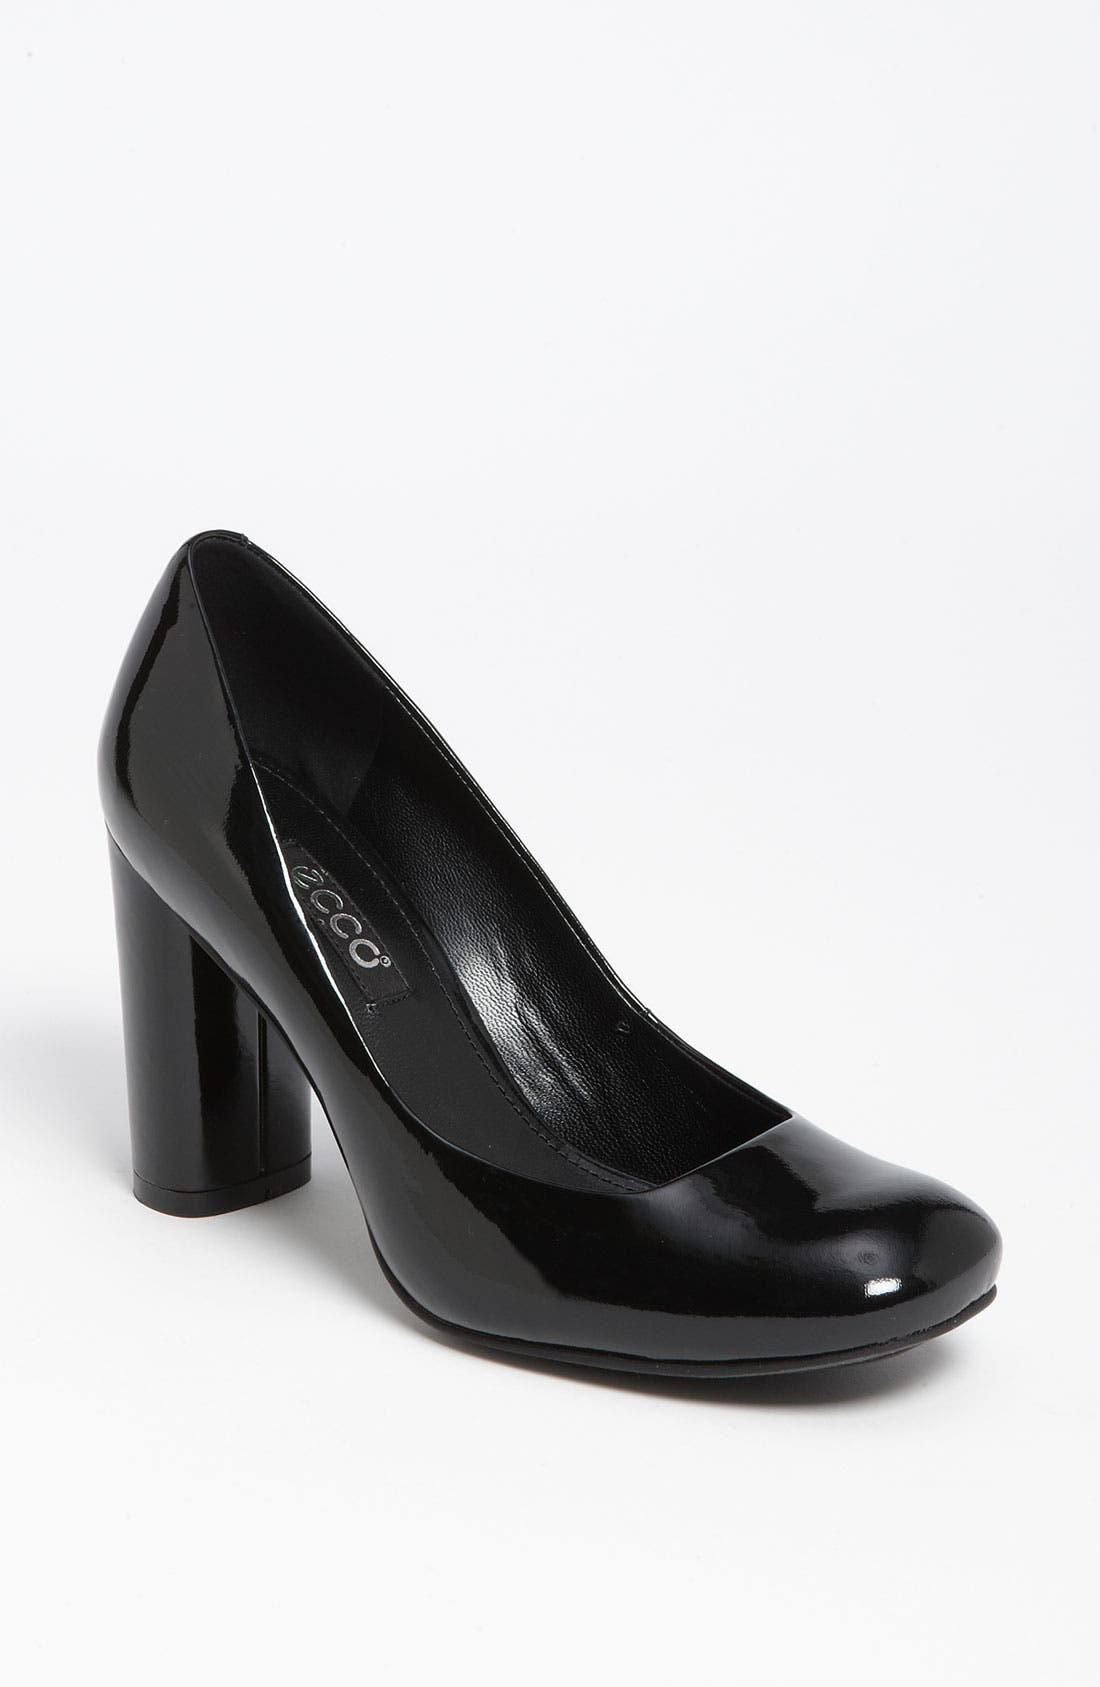 Alternate Image 1 Selected - ECCO 'Nevers' Pump